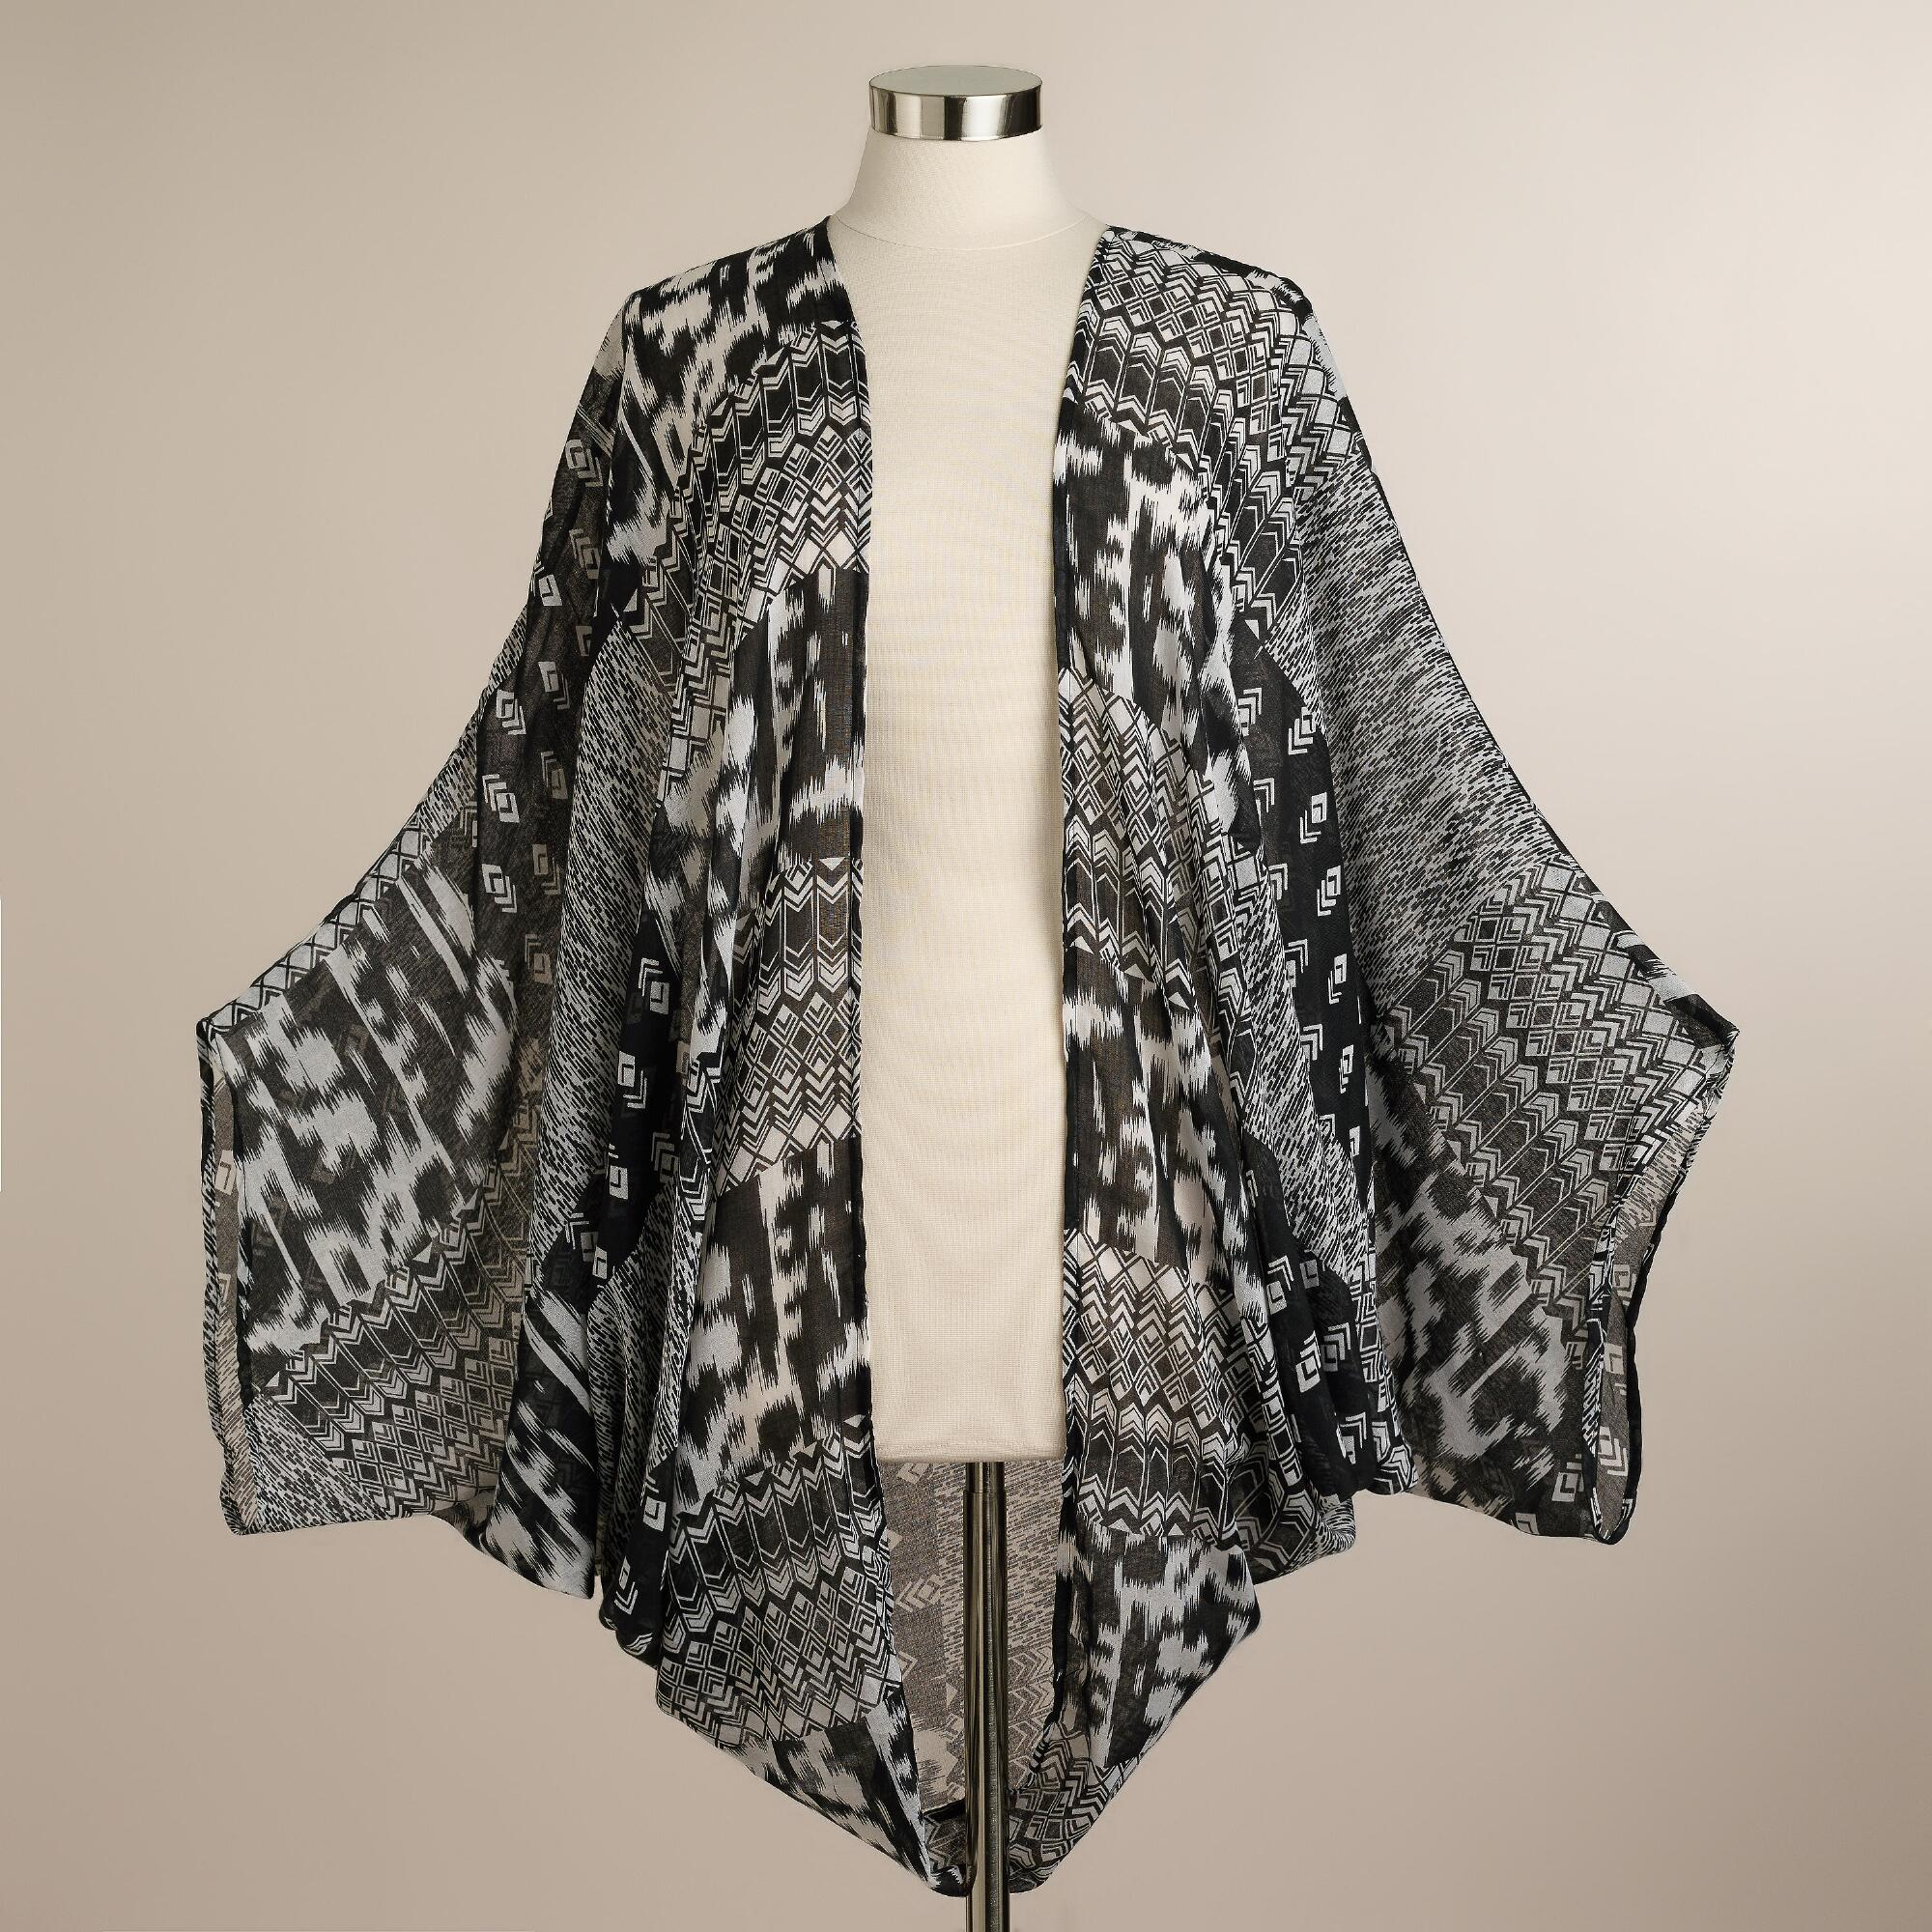 More Details Johnny Was Rose Reversible Snap-Front Silk Twill Kimono Jacket, Plus Size Details EXCLUSIVELY AT NEIMAN MARCUS Johnny Was reversible kimono in printed silk twill with embroidered trim. V neckline; snap front with two-interior buttons. 3/4 kimono sleeves.